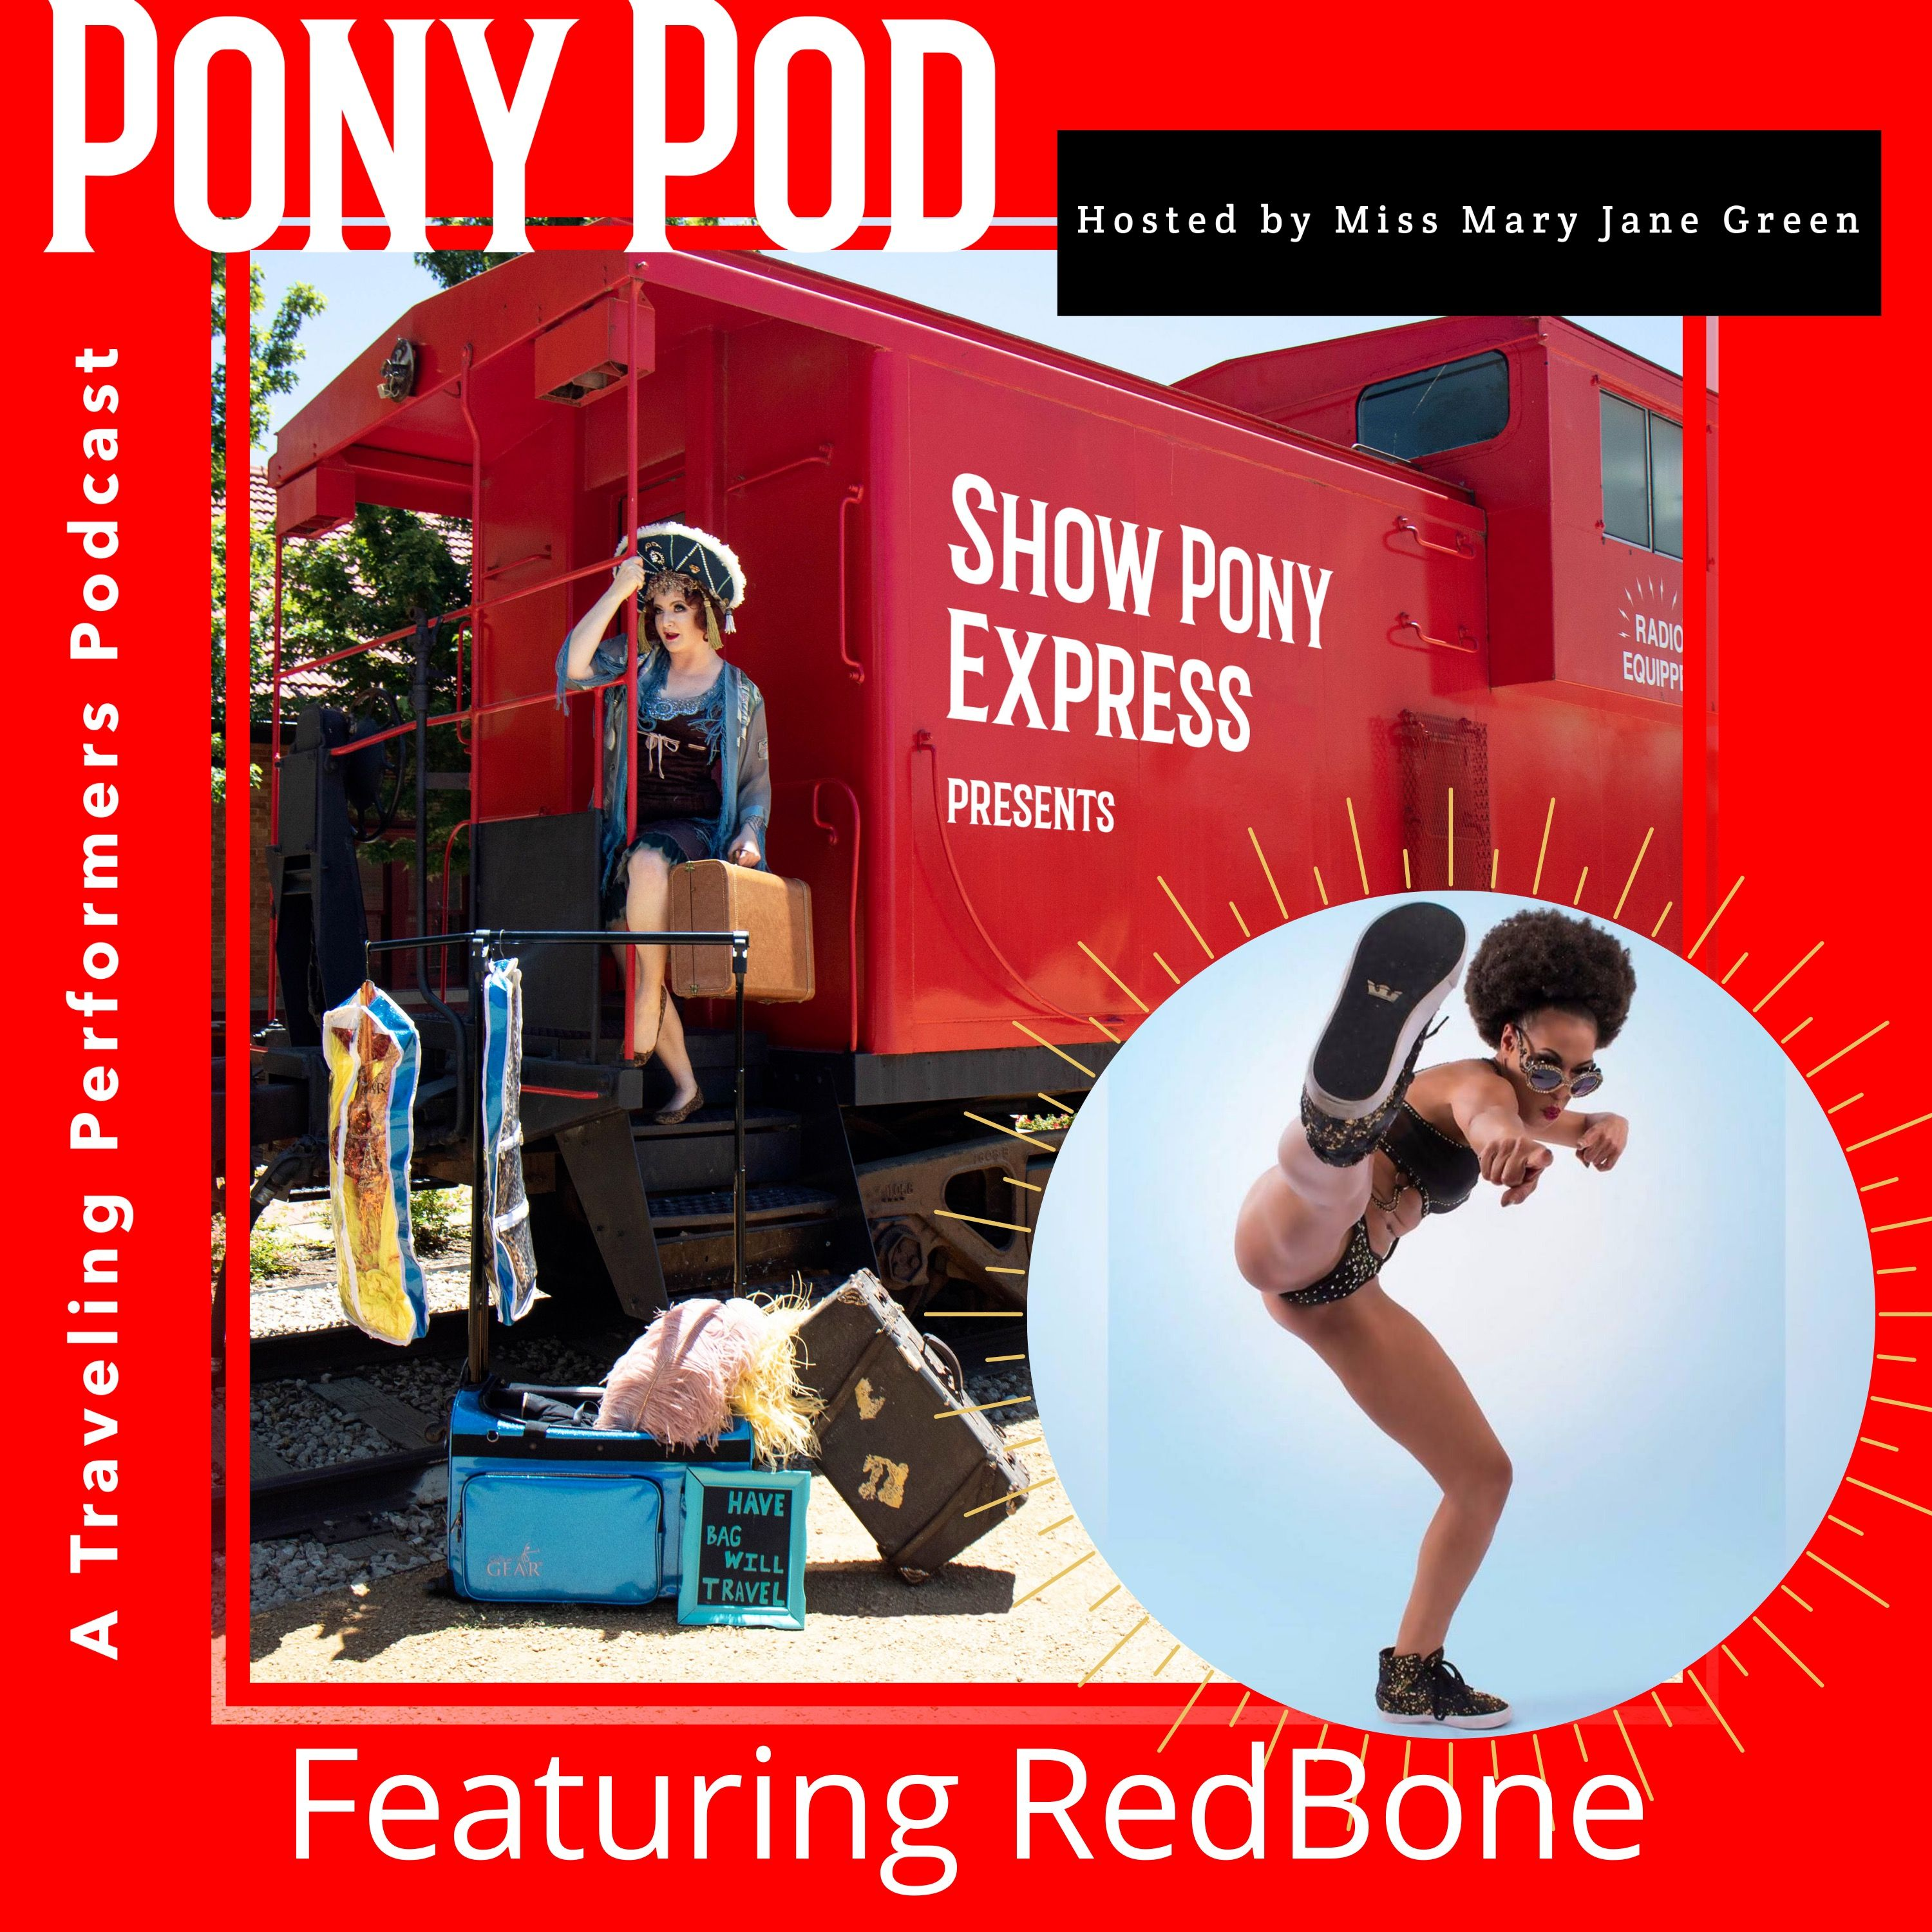 Pony Pod - A Traveling Performers Podcast featuring RedBone